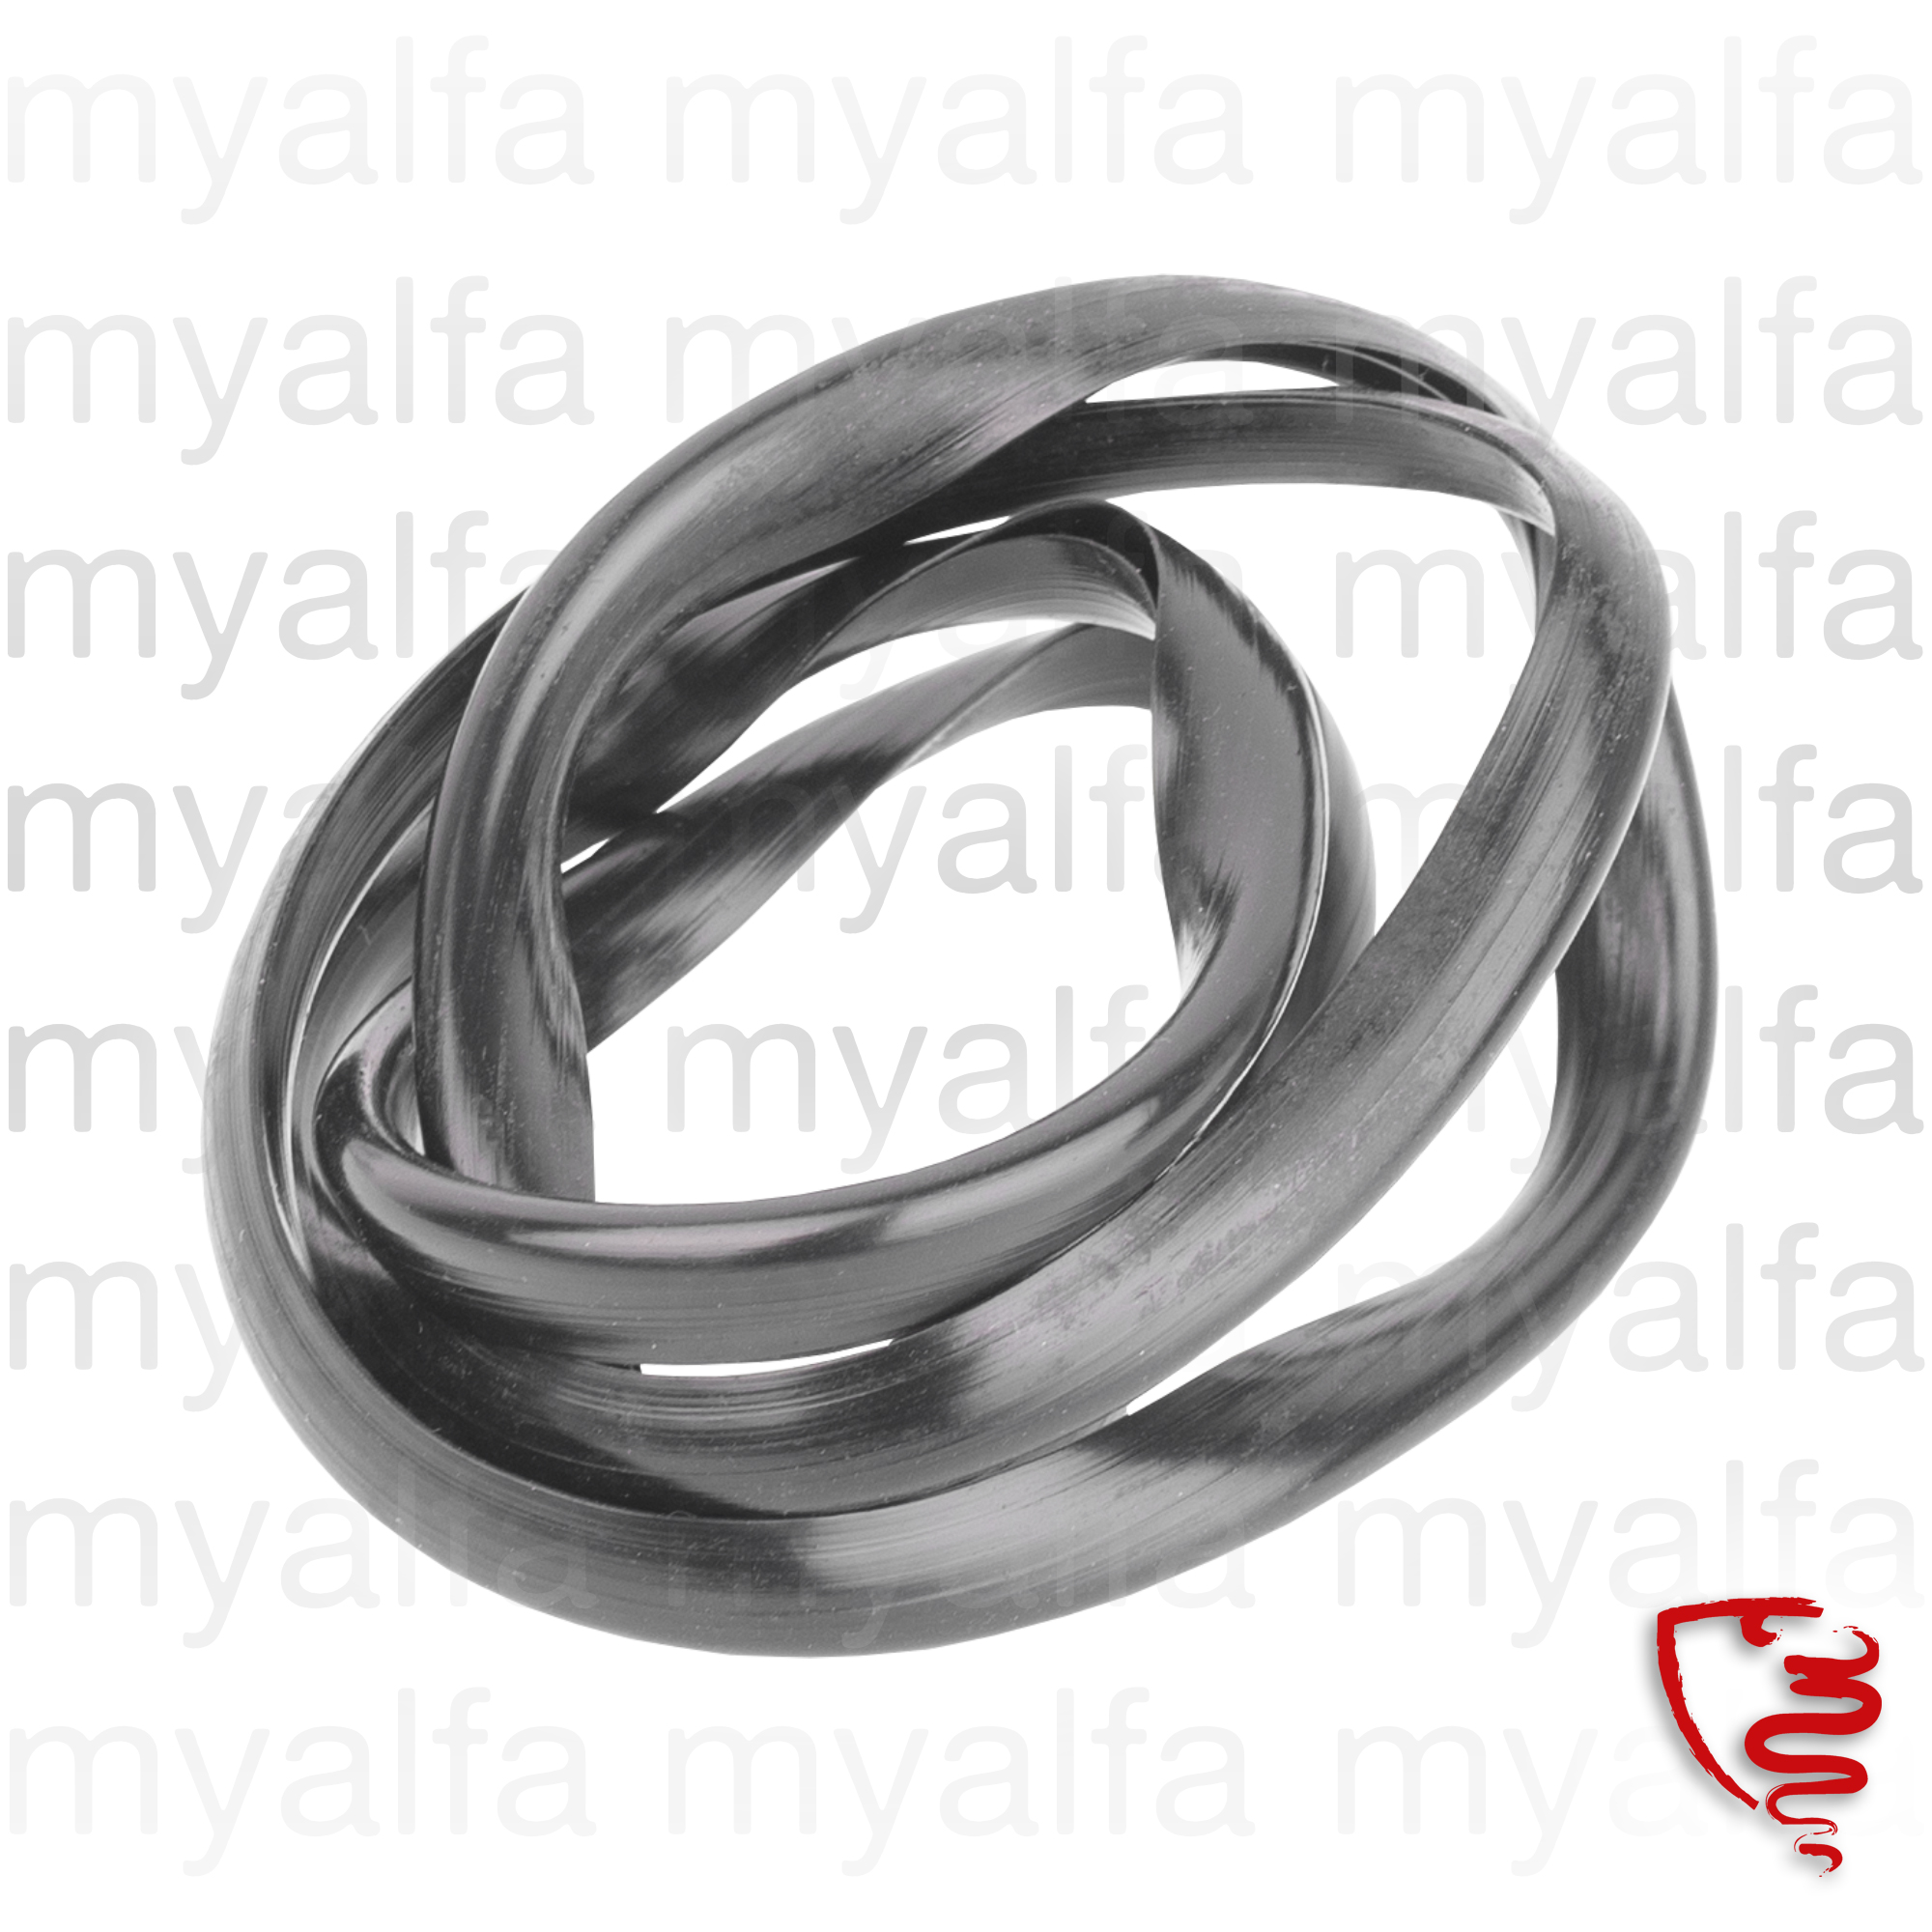 Rubber for central grid for 105/115, Spider, Body parts, Chrome Parts, Front